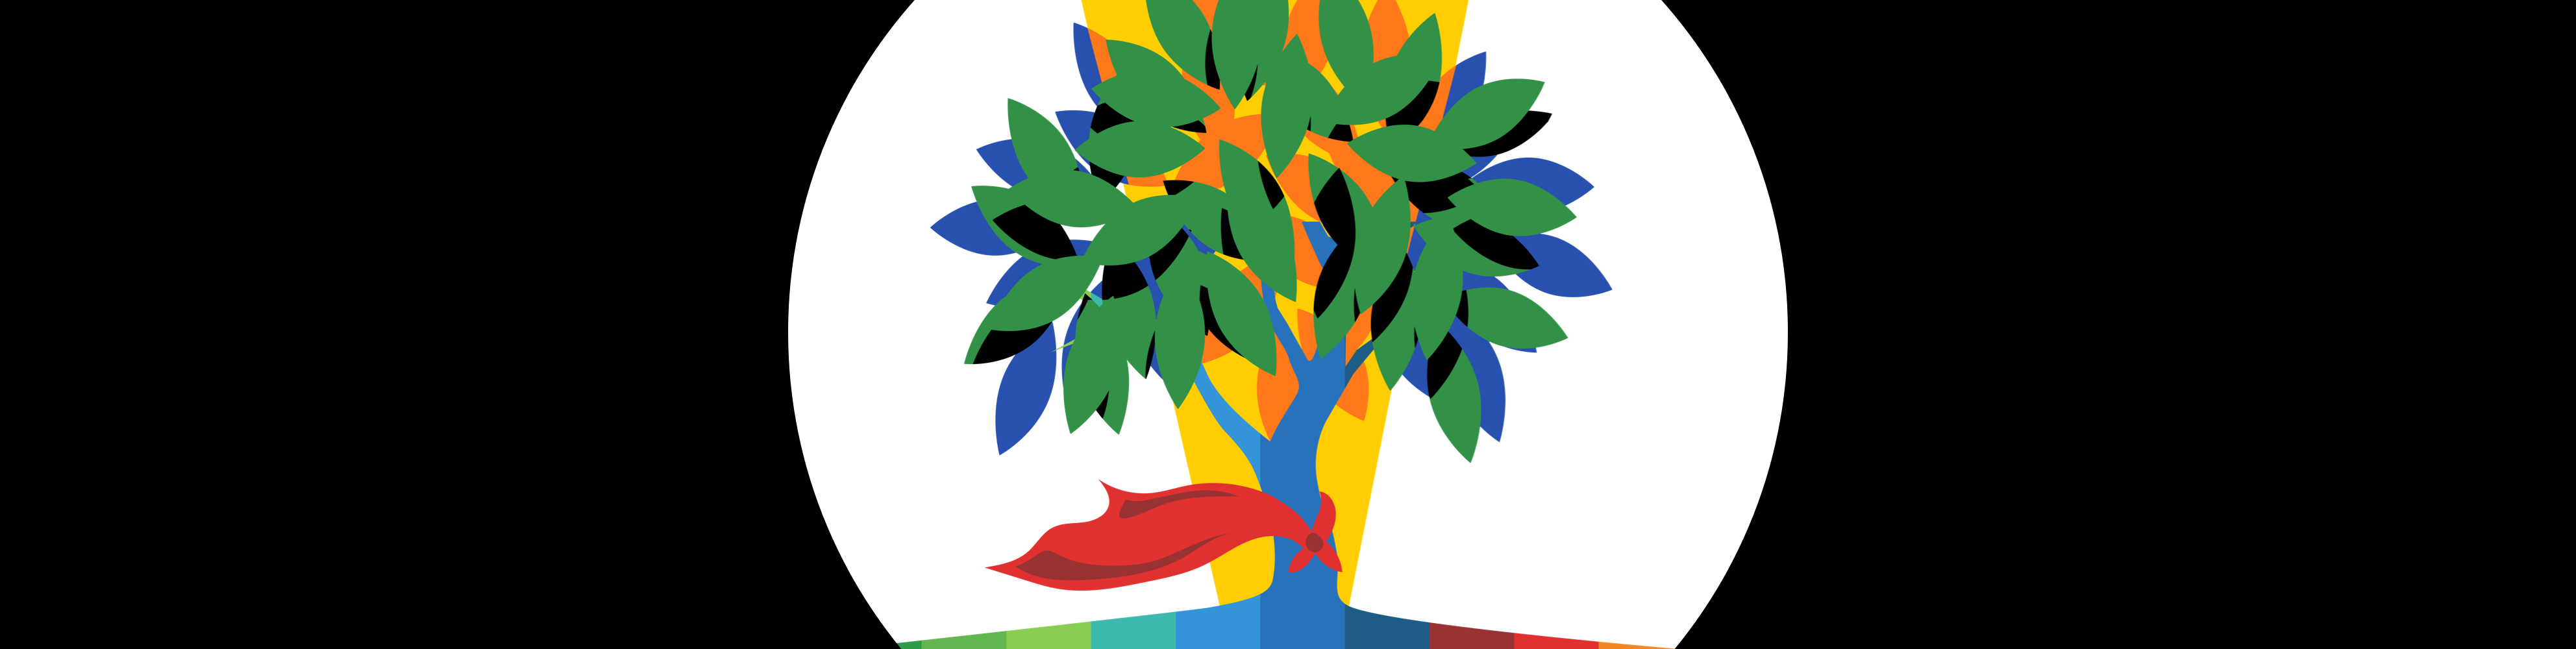 Illustrated tree with a cape